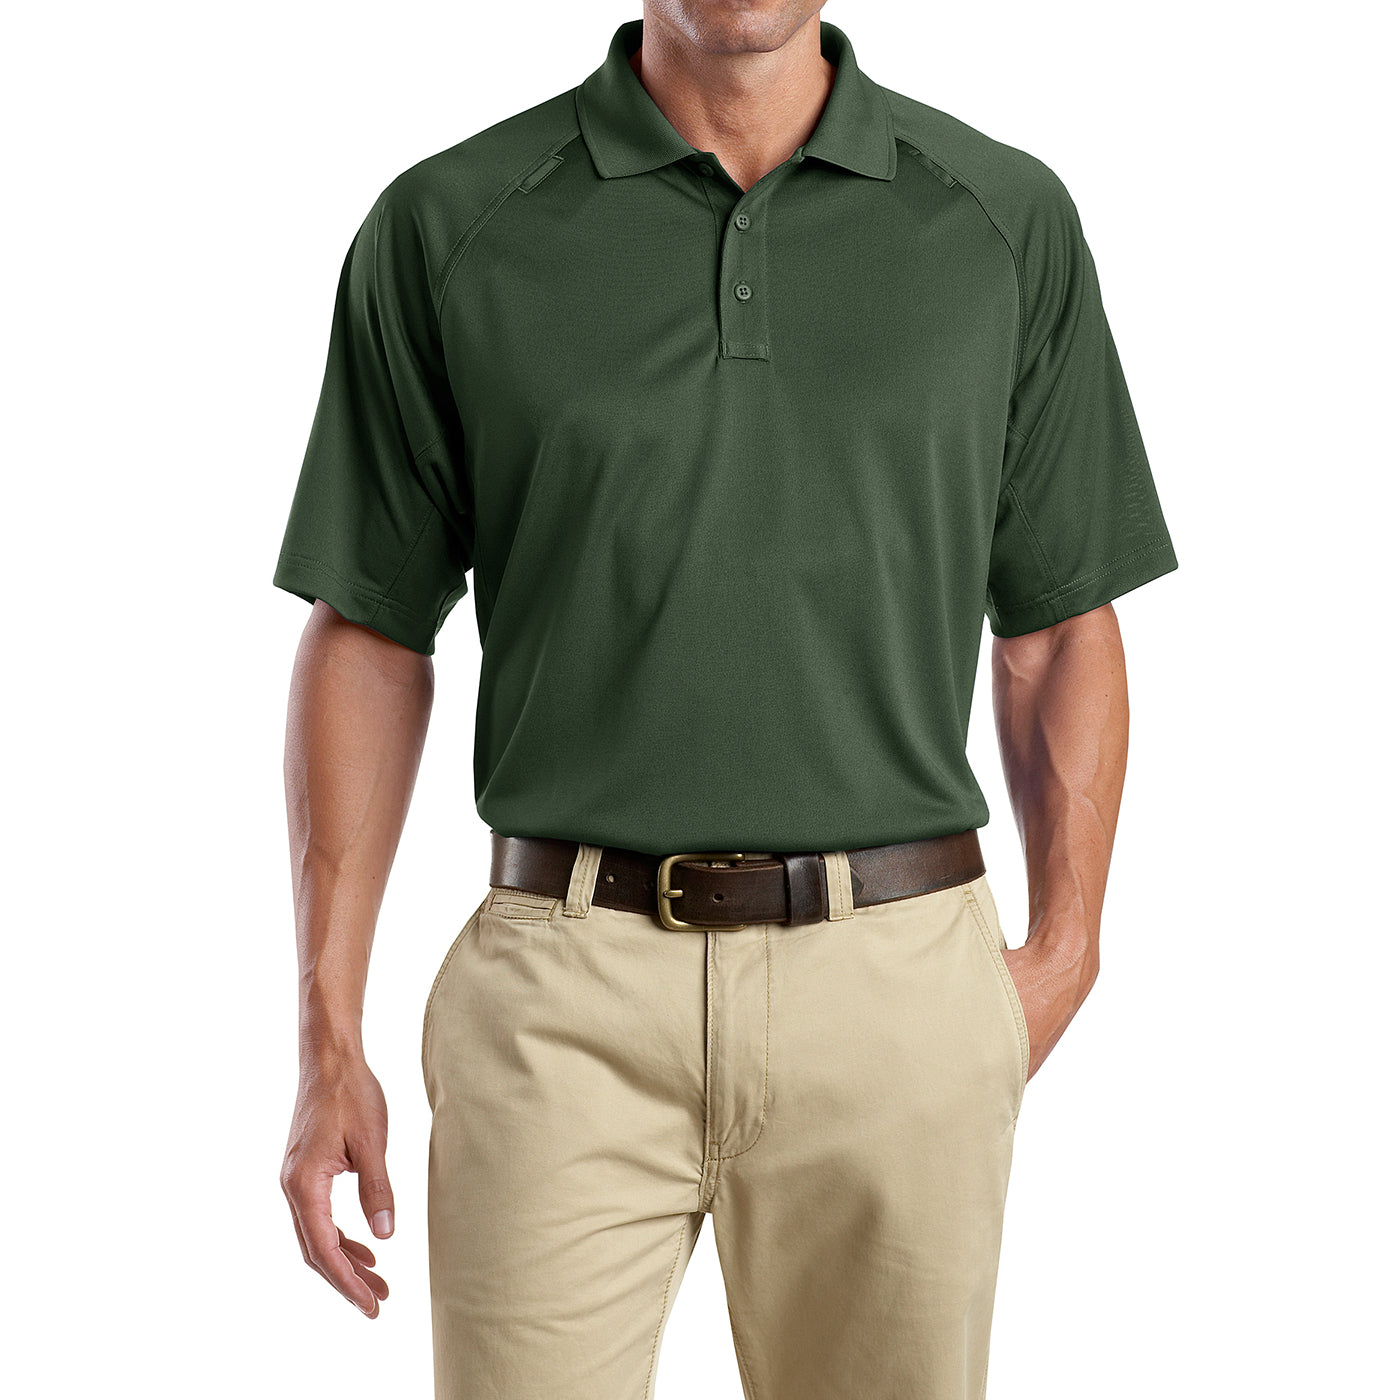 Men's Snag-Proof Tactical Polo Shirt - Dark Green - Front